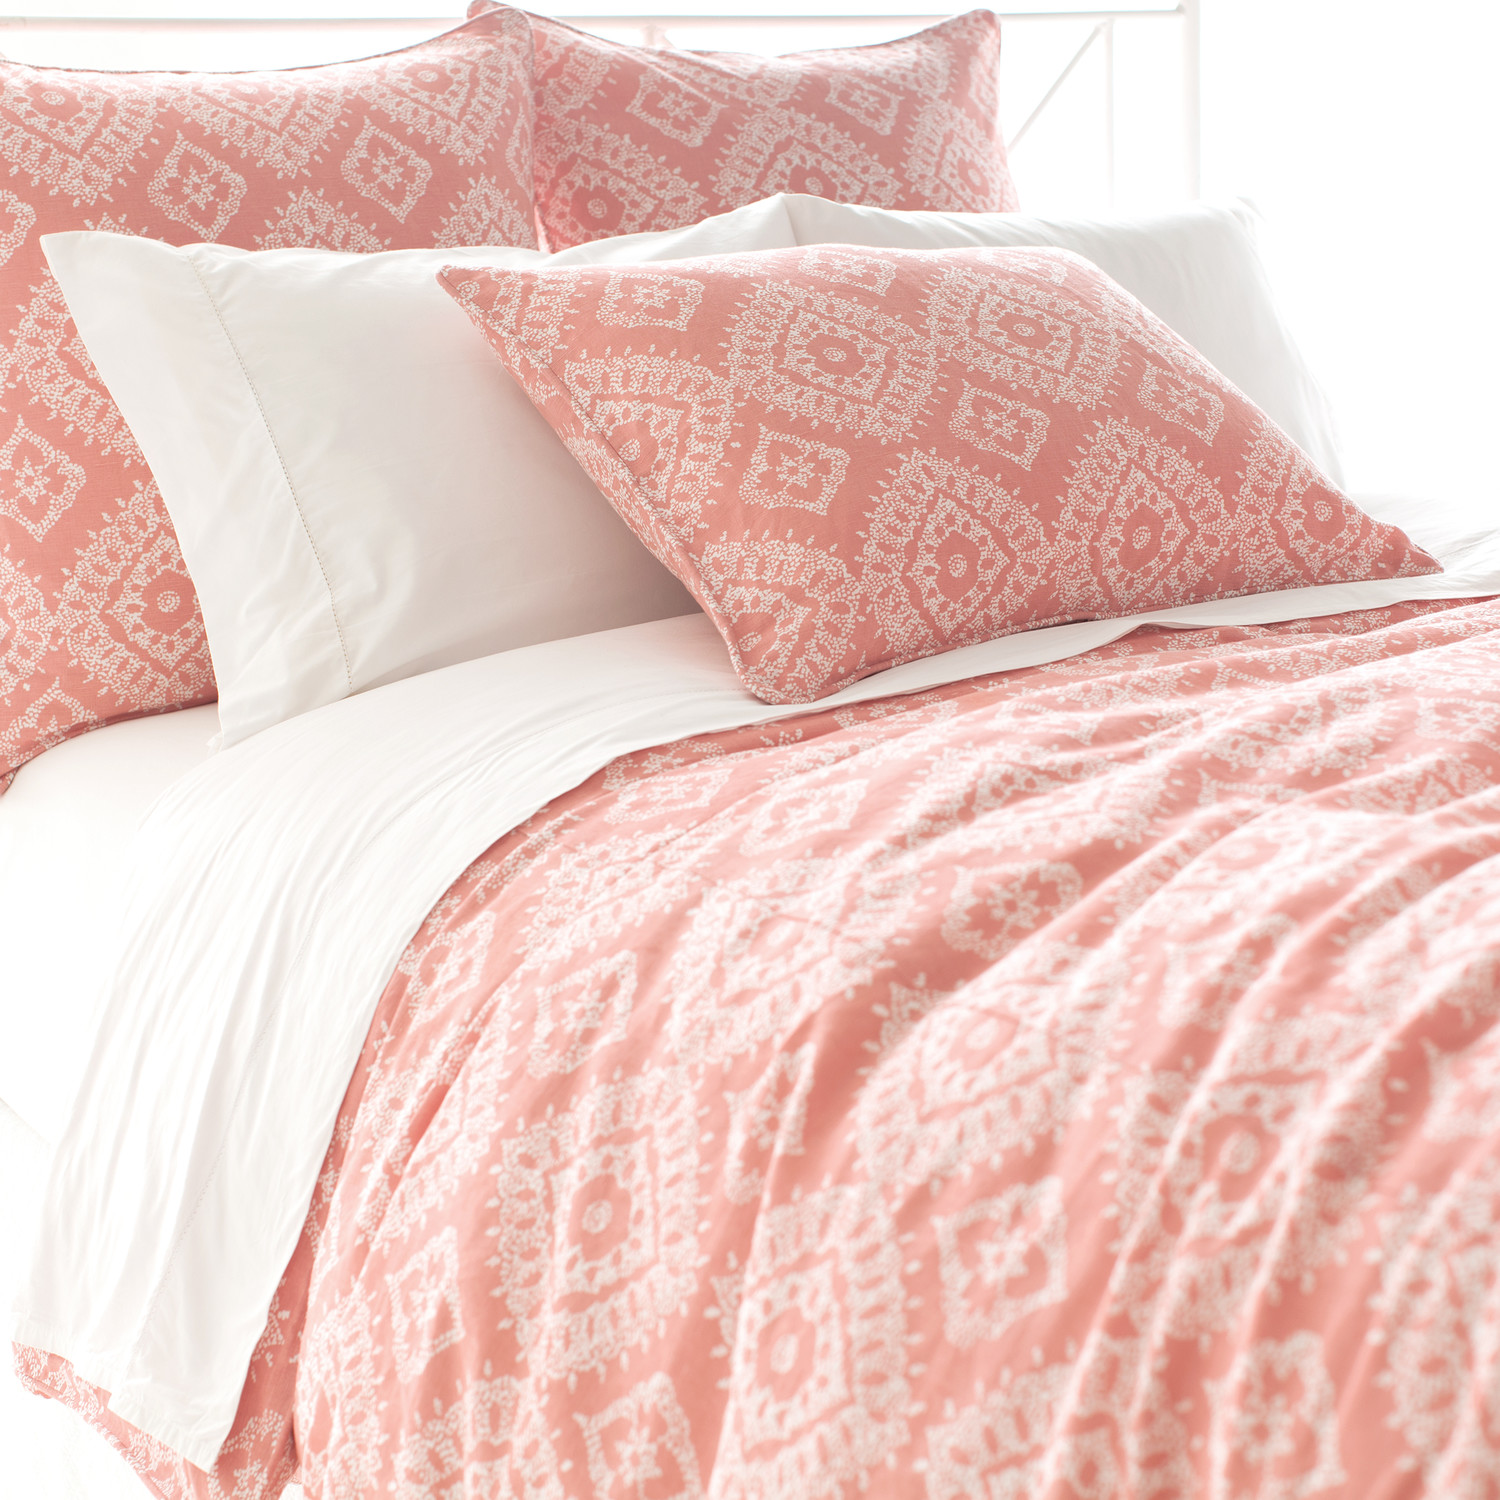 lovely pine cone hill ramala duvet cover in pink and white theme for bed ideas